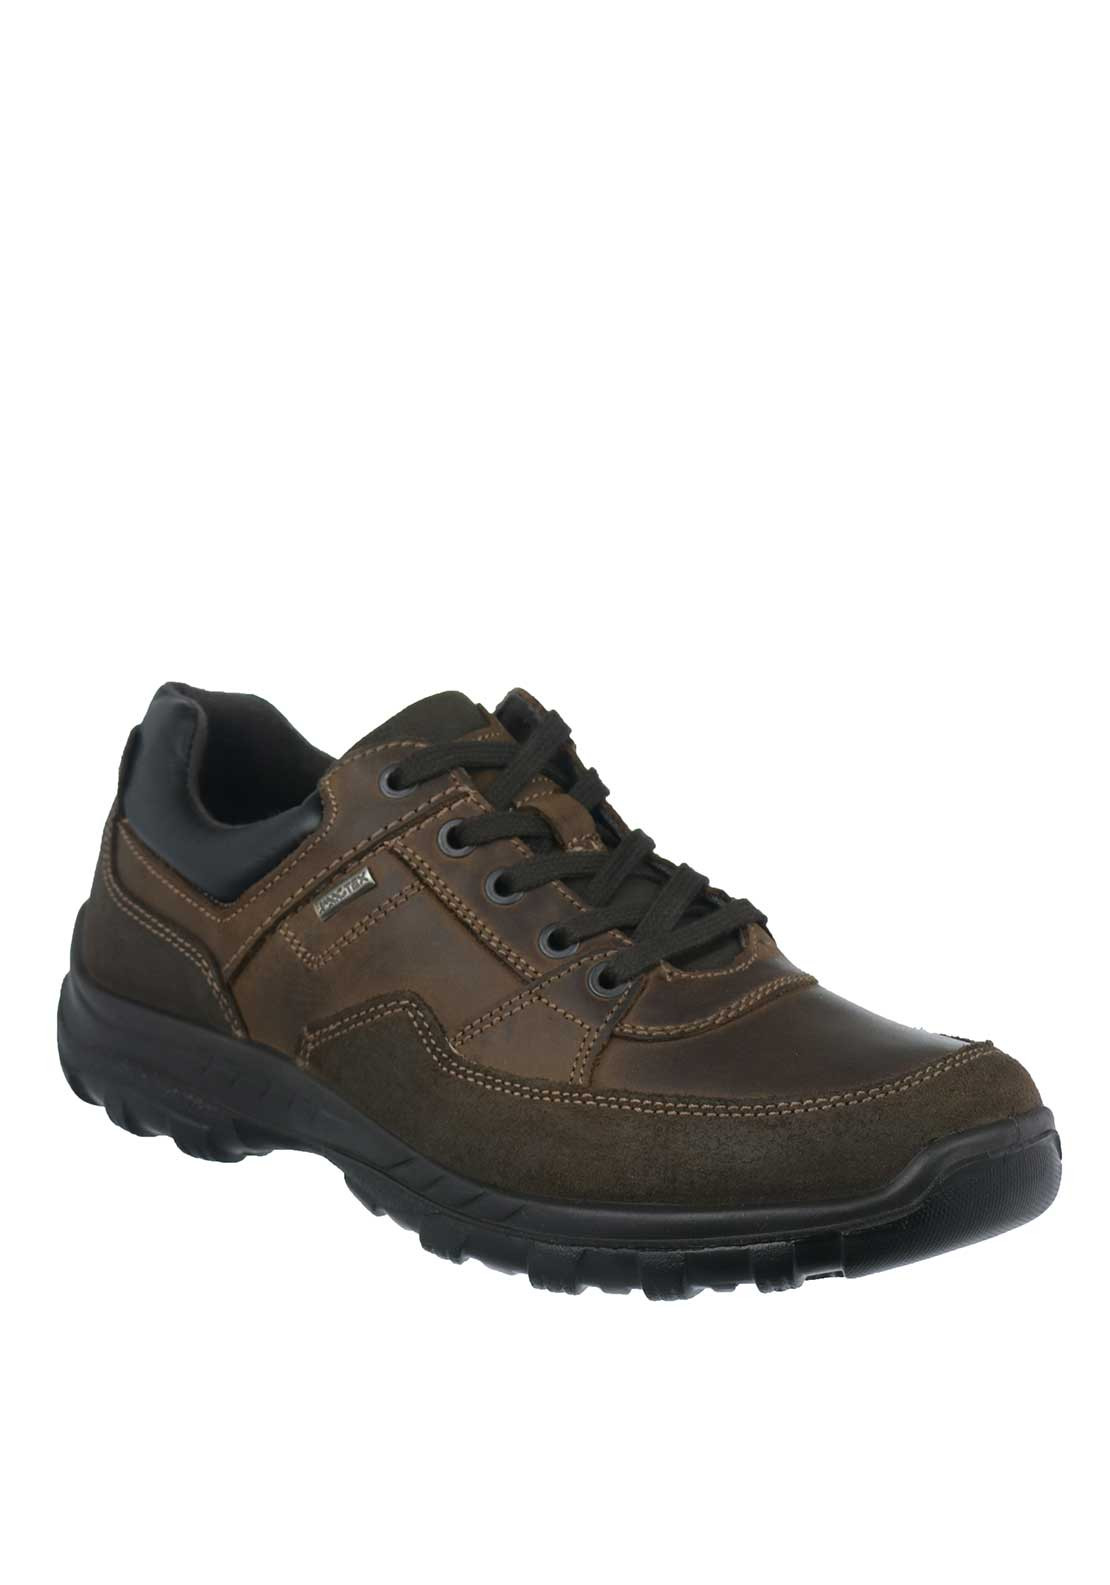 IMAC Mens Corbett Lace Up Comfort Fit Shoes, Brown